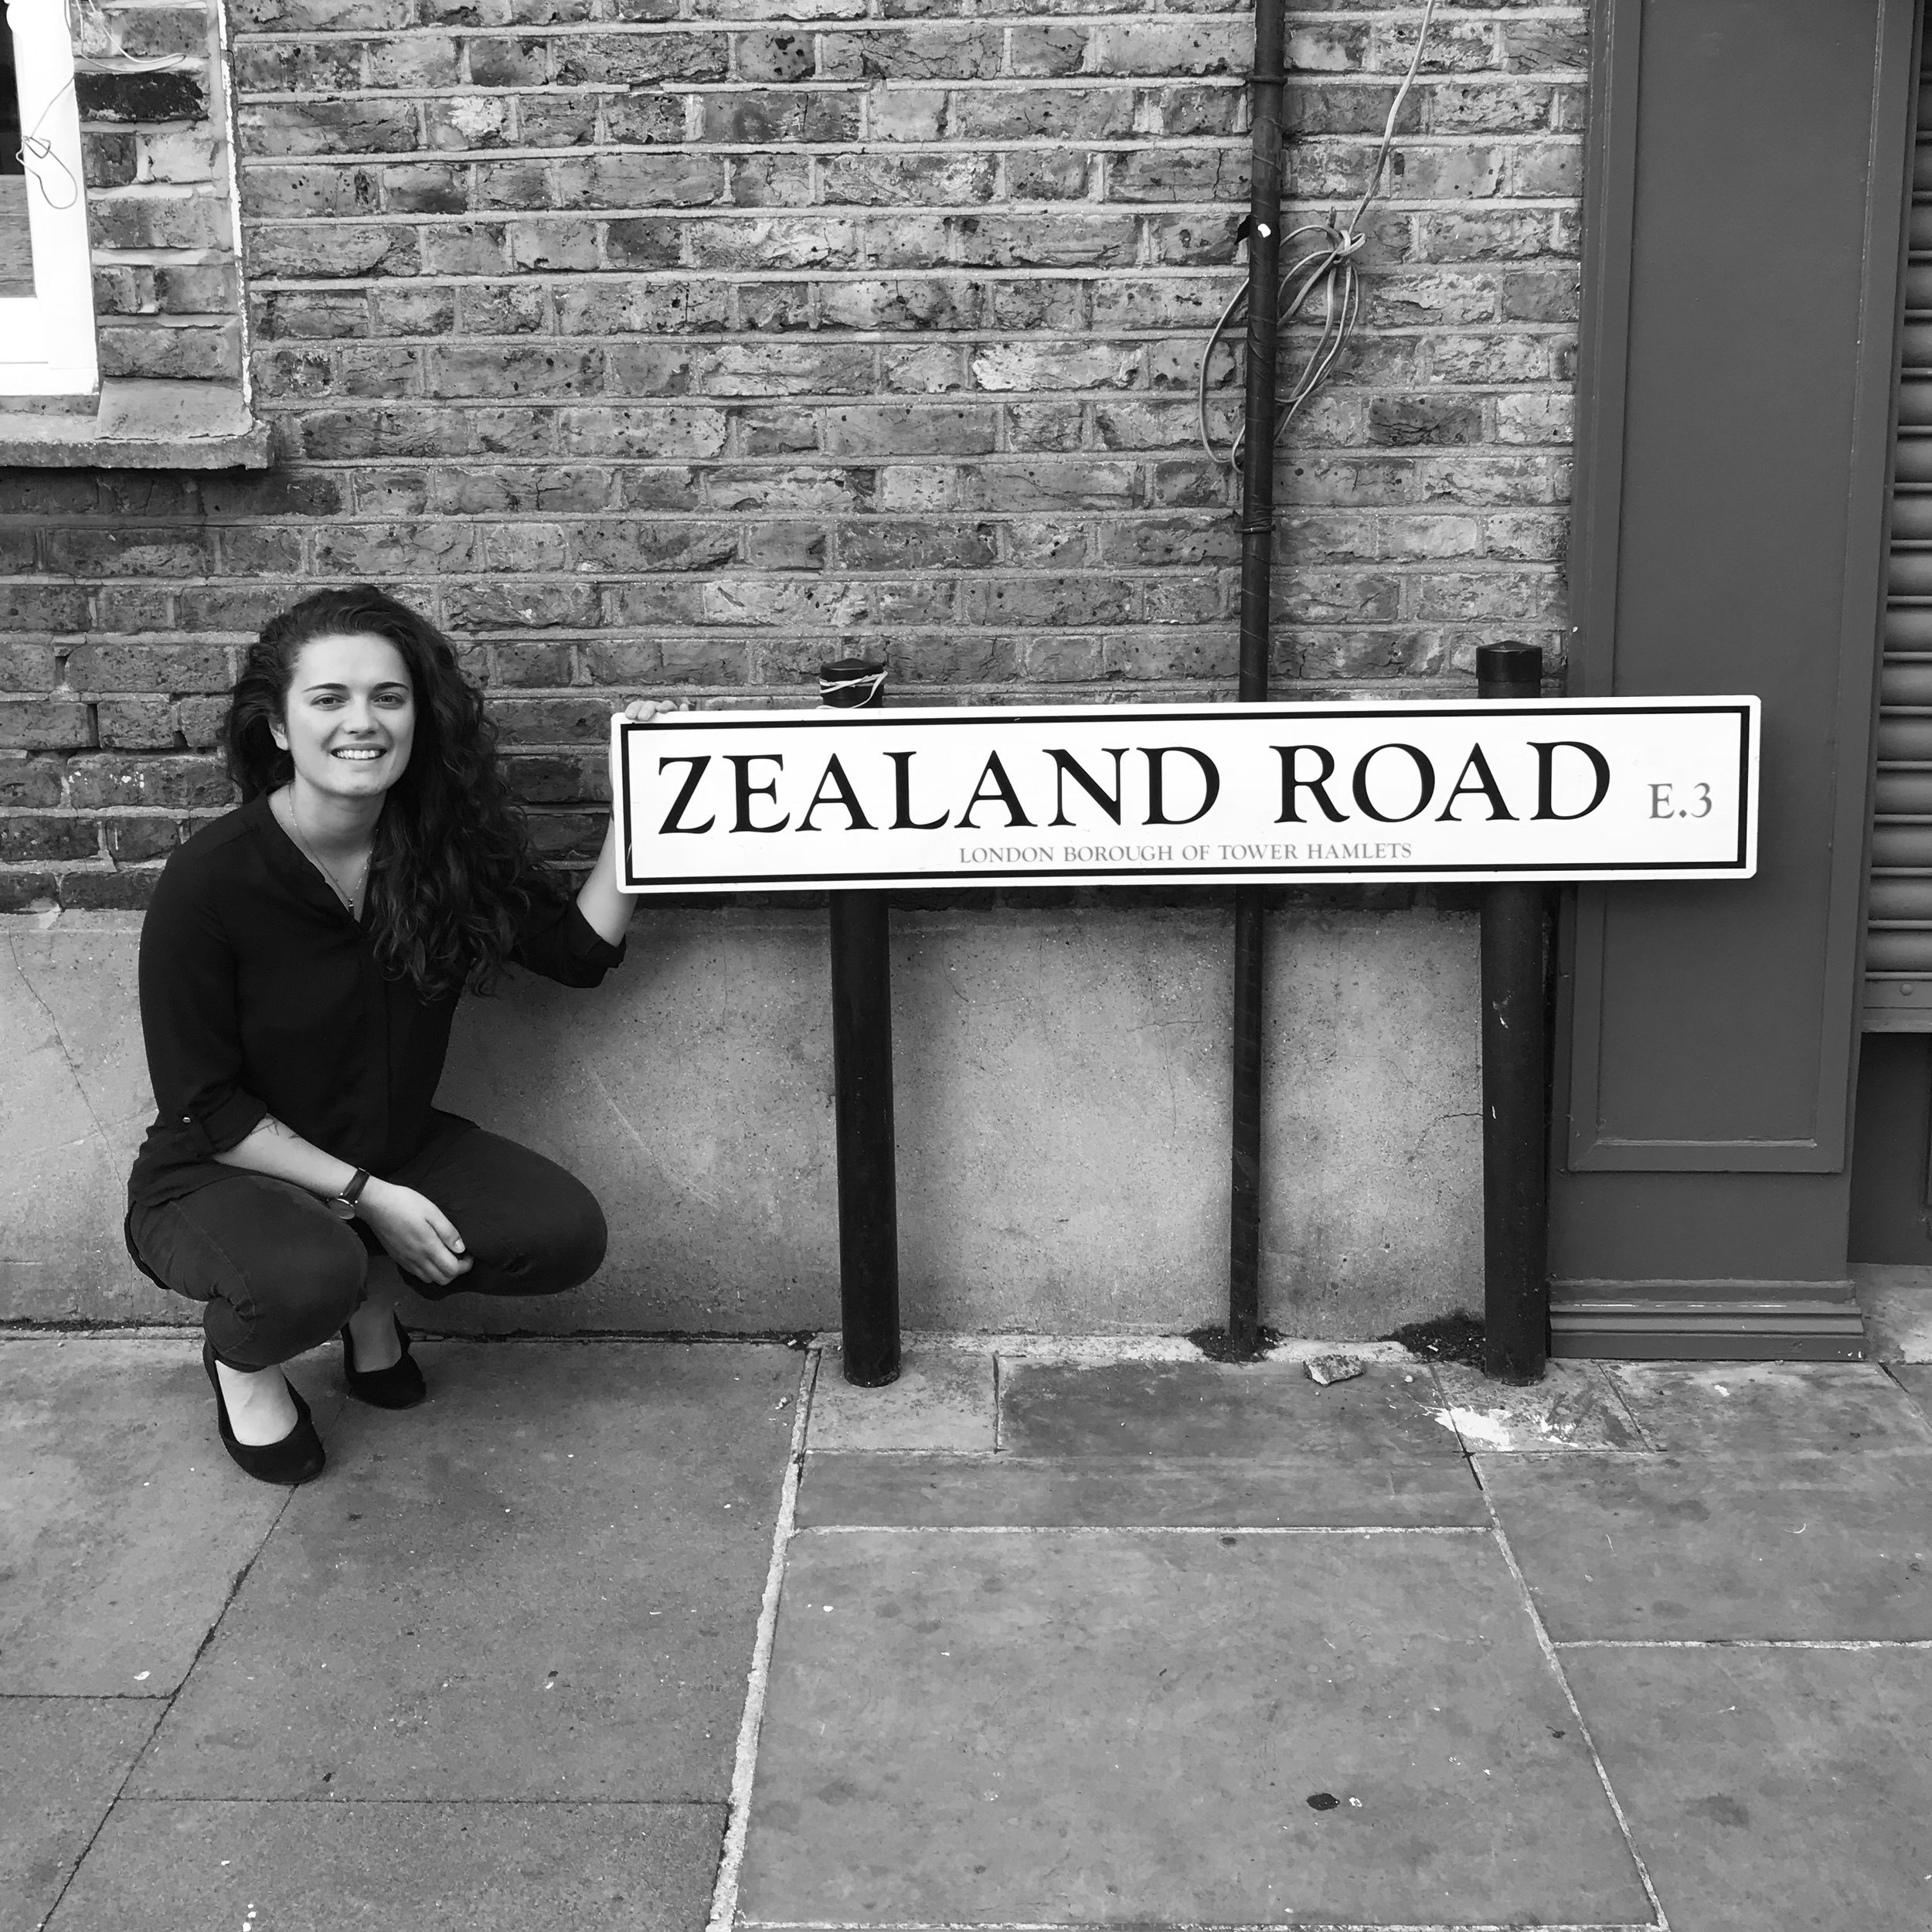 alicia and i managed to find a 'zealand road' sign - i'm what's new!!